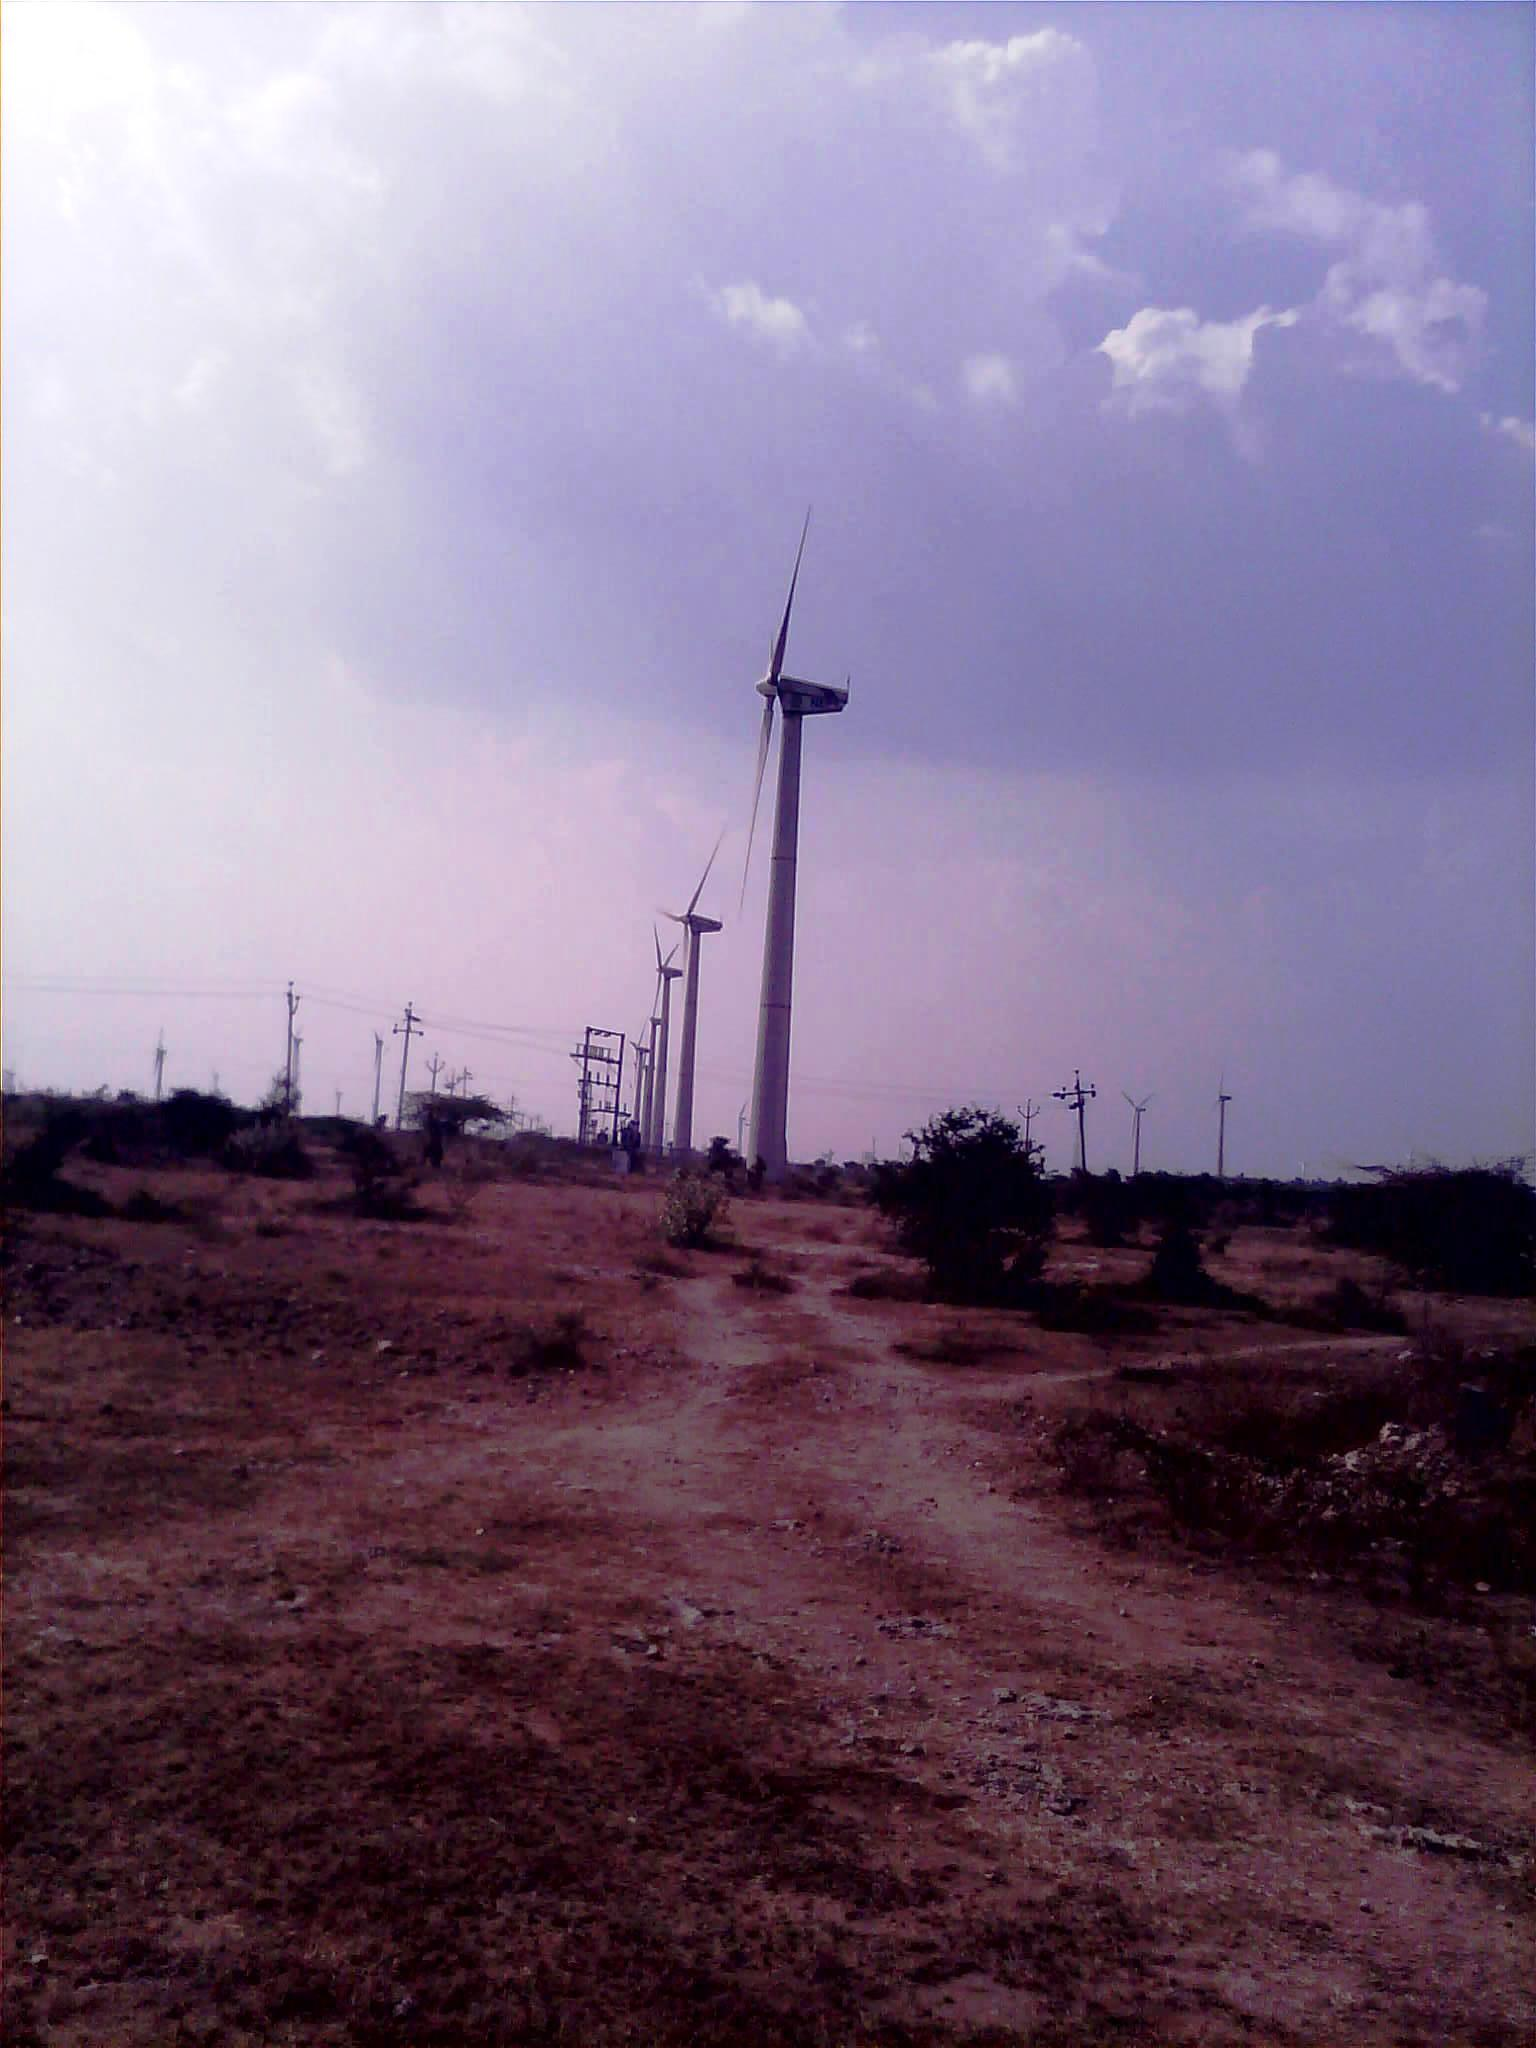 File:Windmills for Electricity Generation in a Coimbatore District.jpg ...